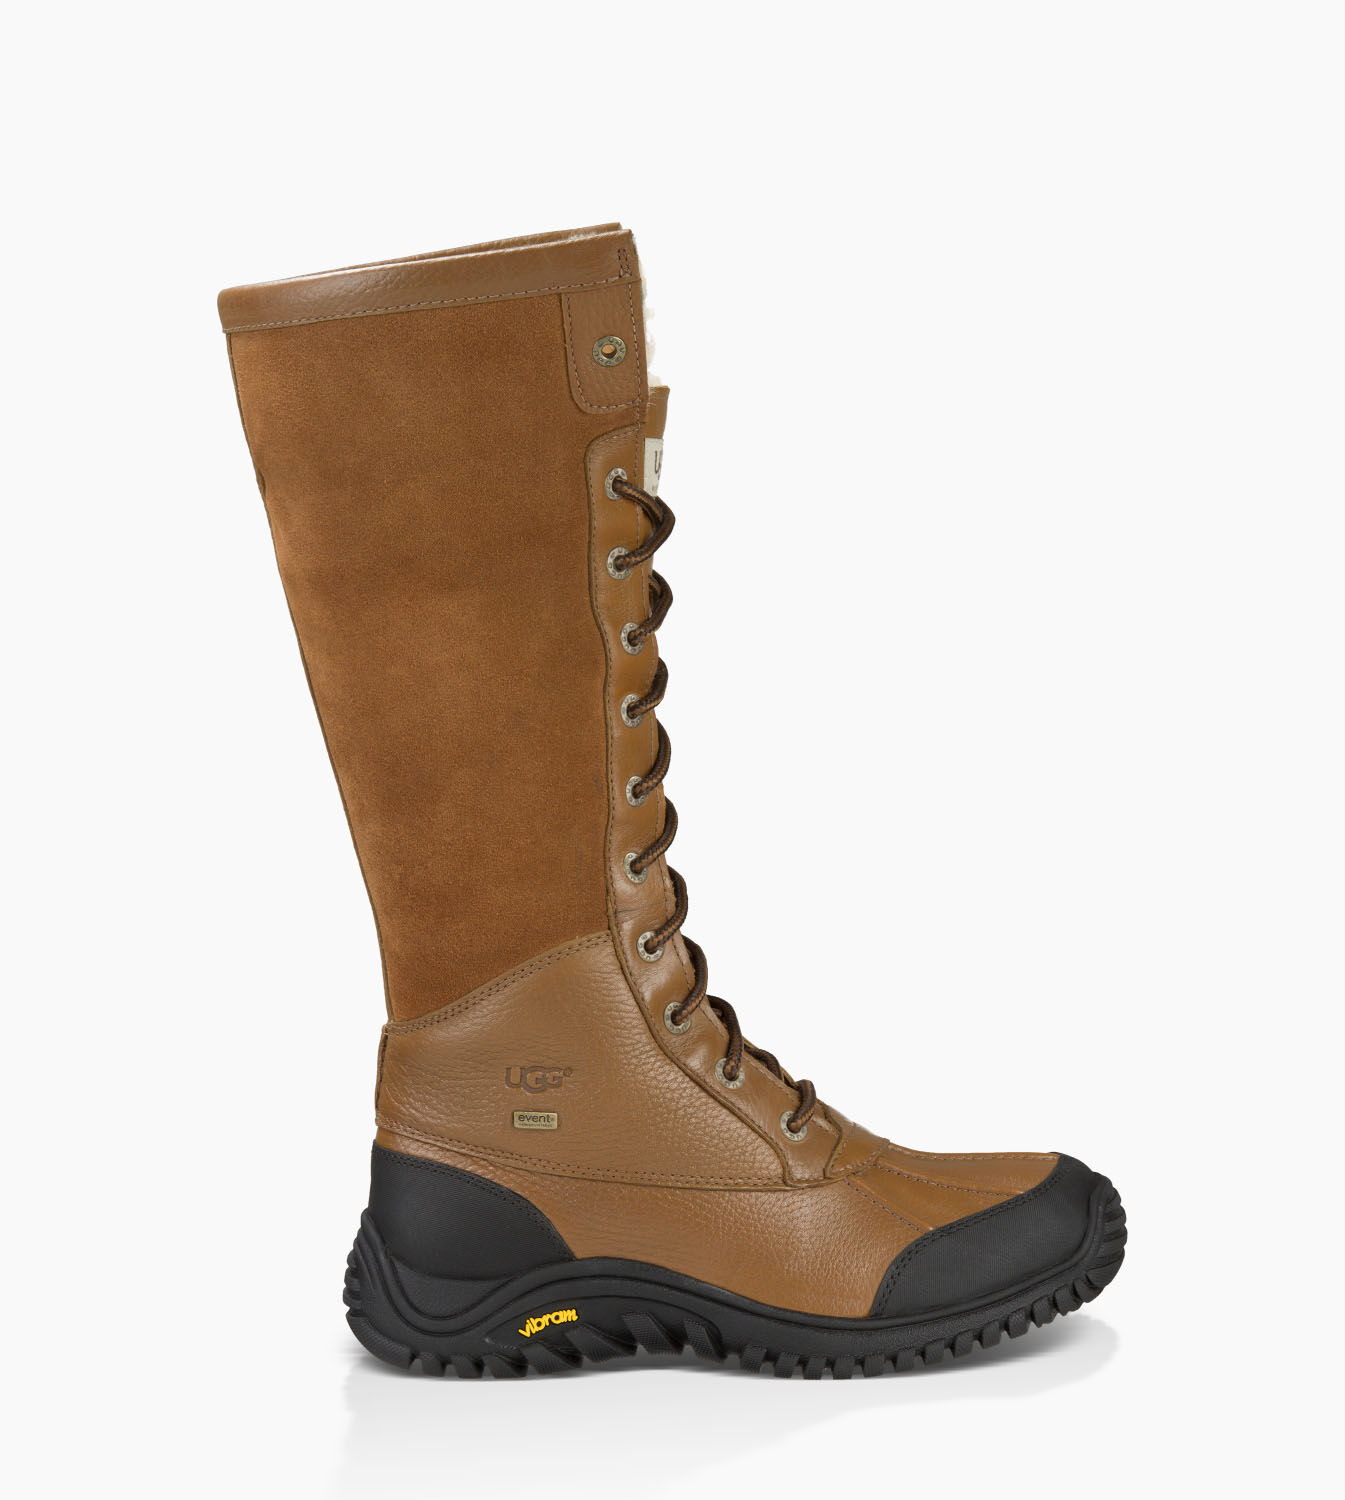 ugg waterproof event boots